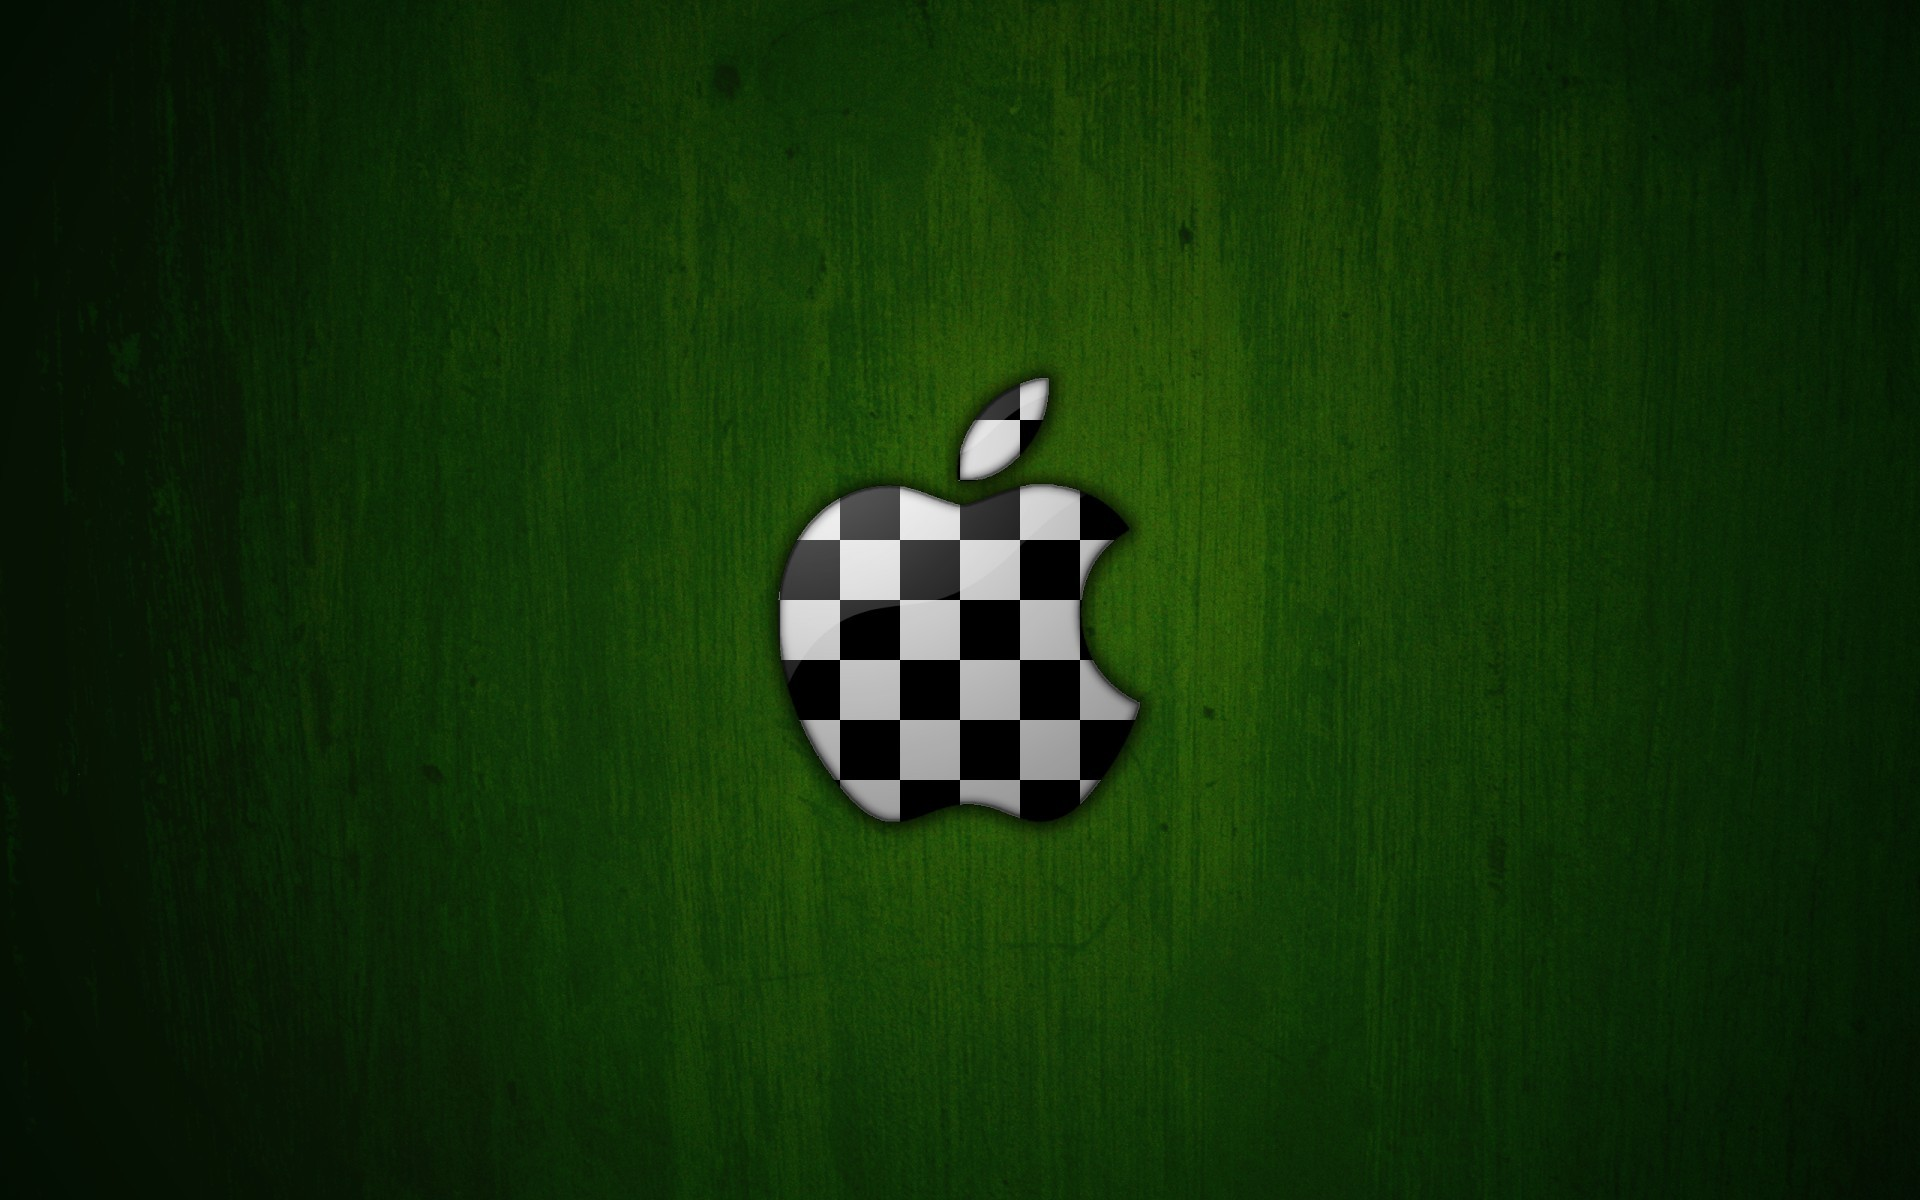 Hd cool wallpapers for your desktop backgrounds - Cool logo wallpapers ...